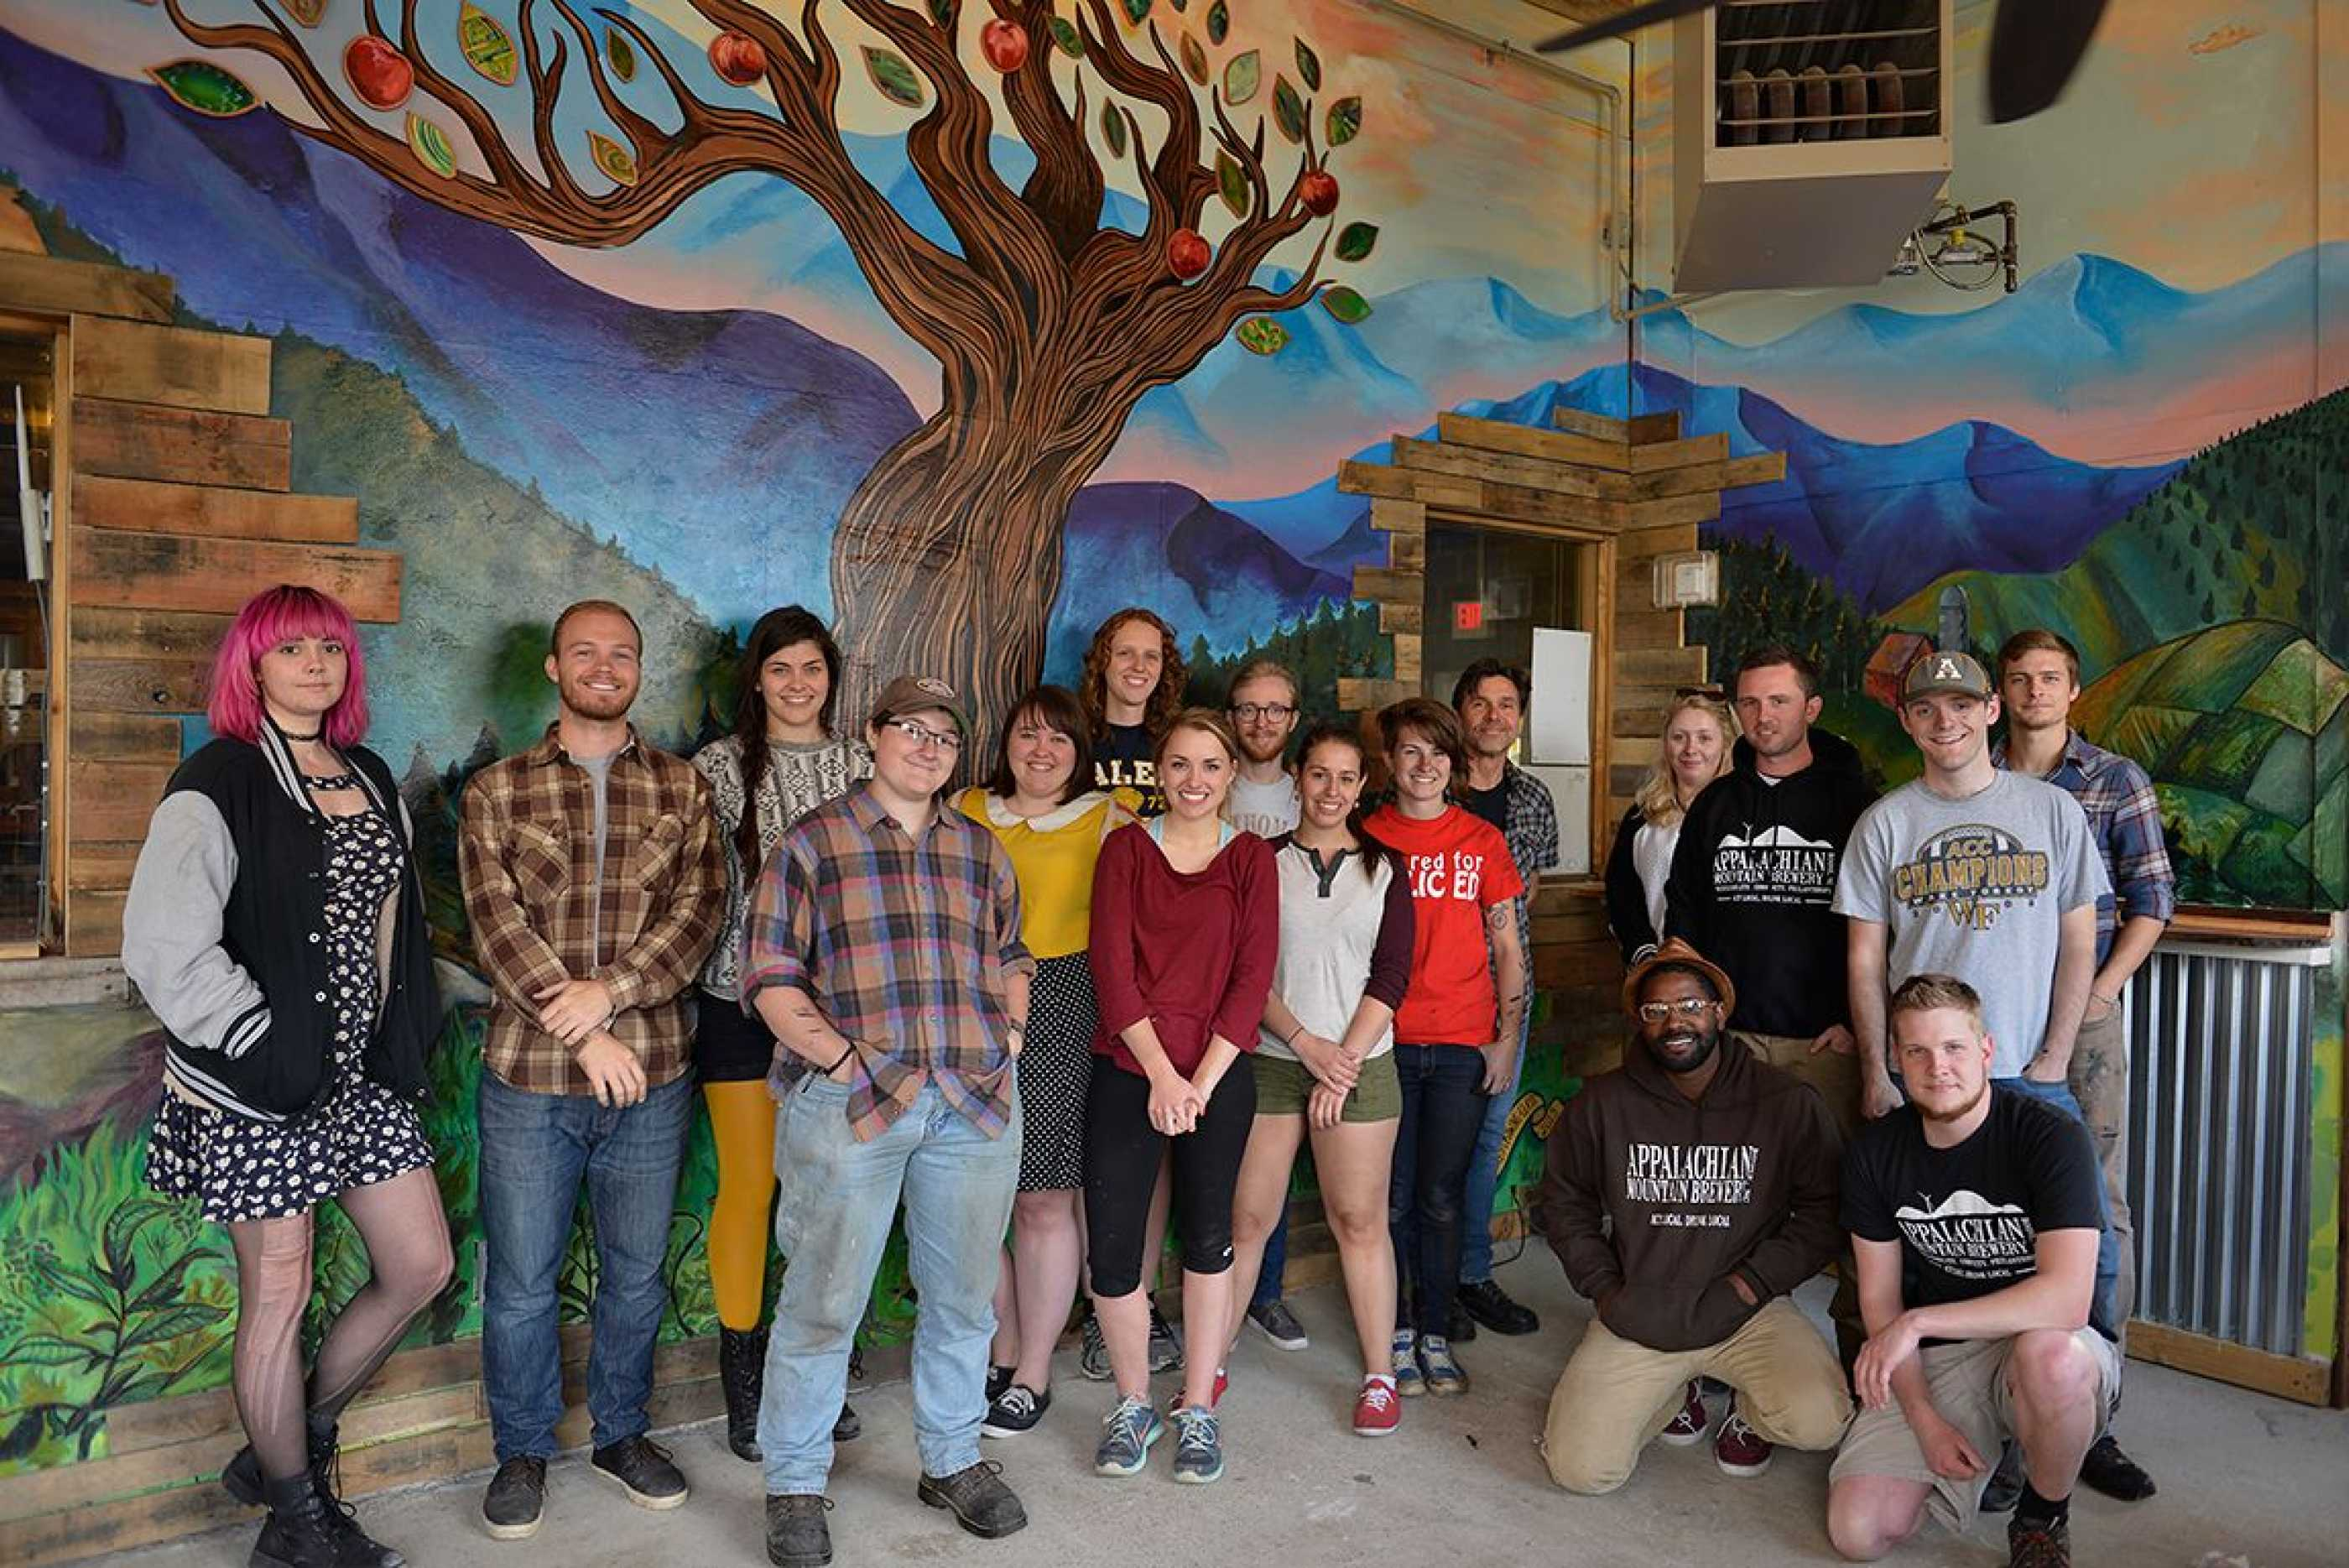 Advanced Drawing class in front of mural at Appalachian Mountain Brewery